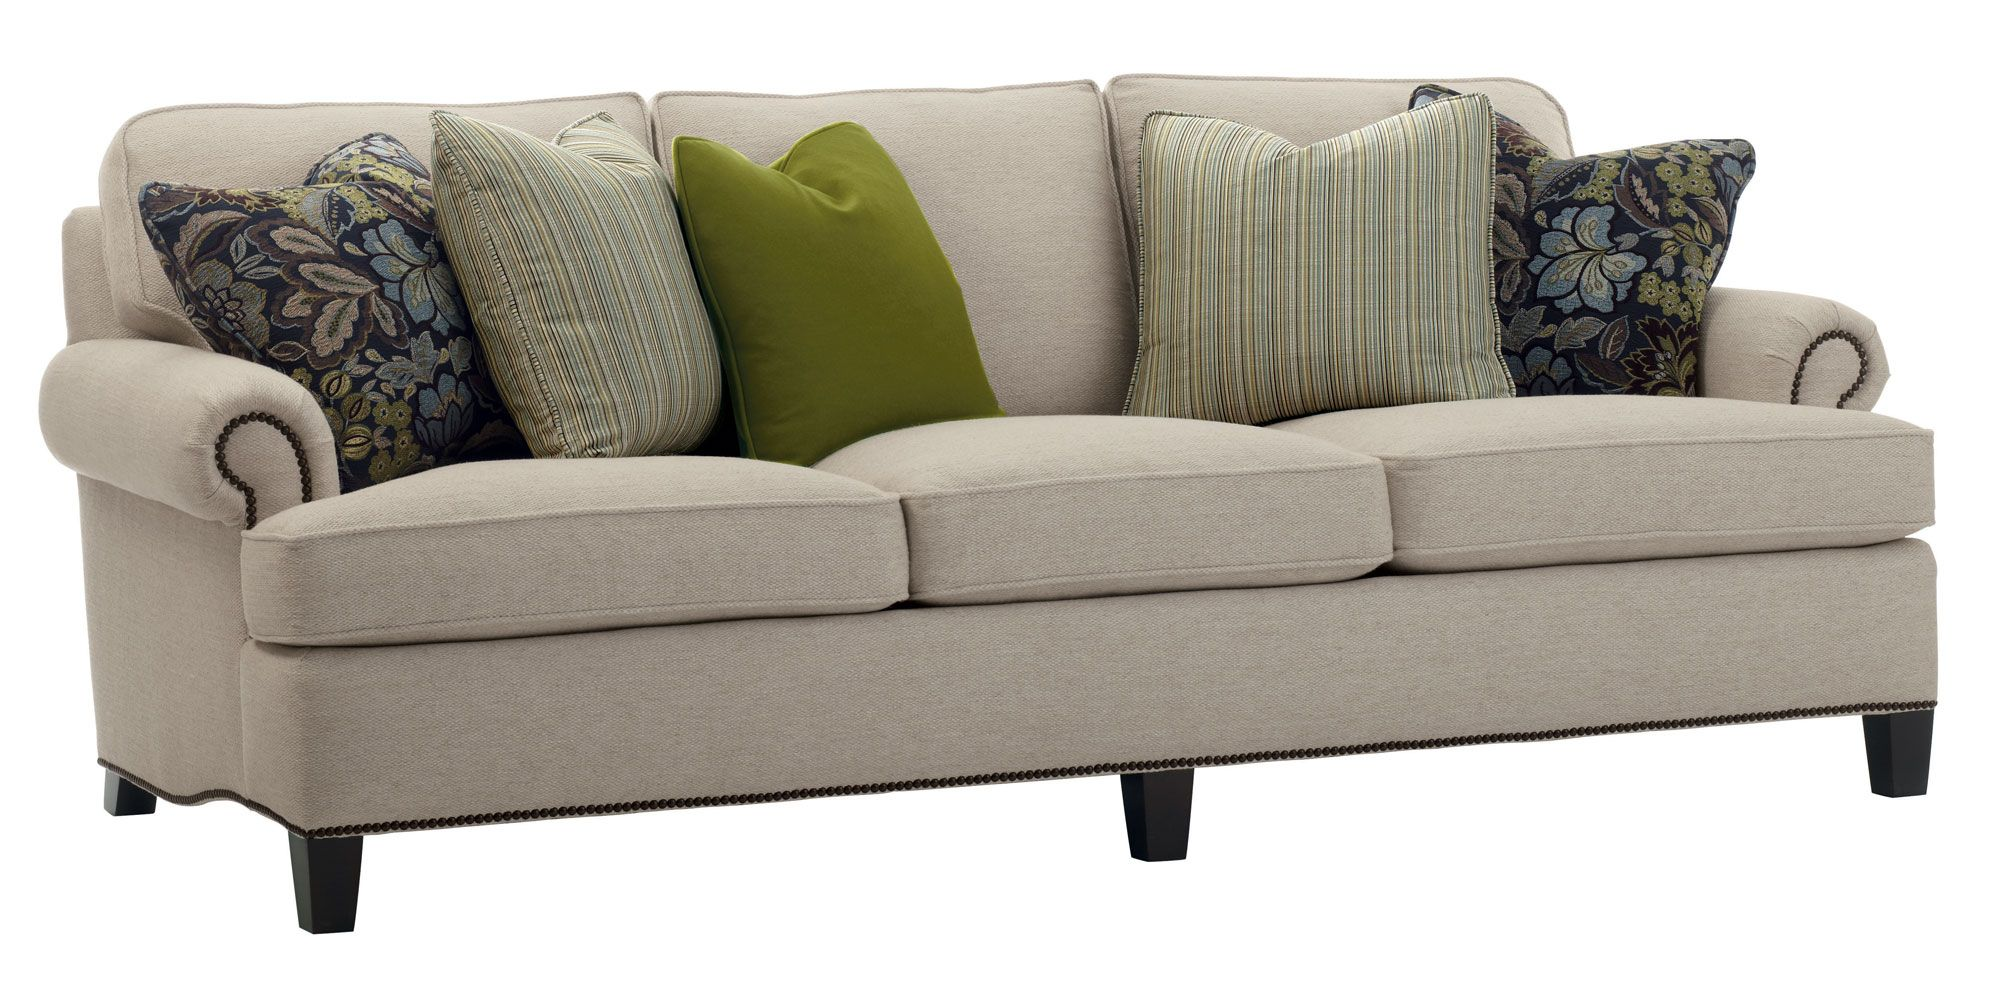 Wondrous Bernhardt Cassandra Sofa B7867 New 1 Sofa Back May Home Interior And Landscaping Ponolsignezvosmurscom